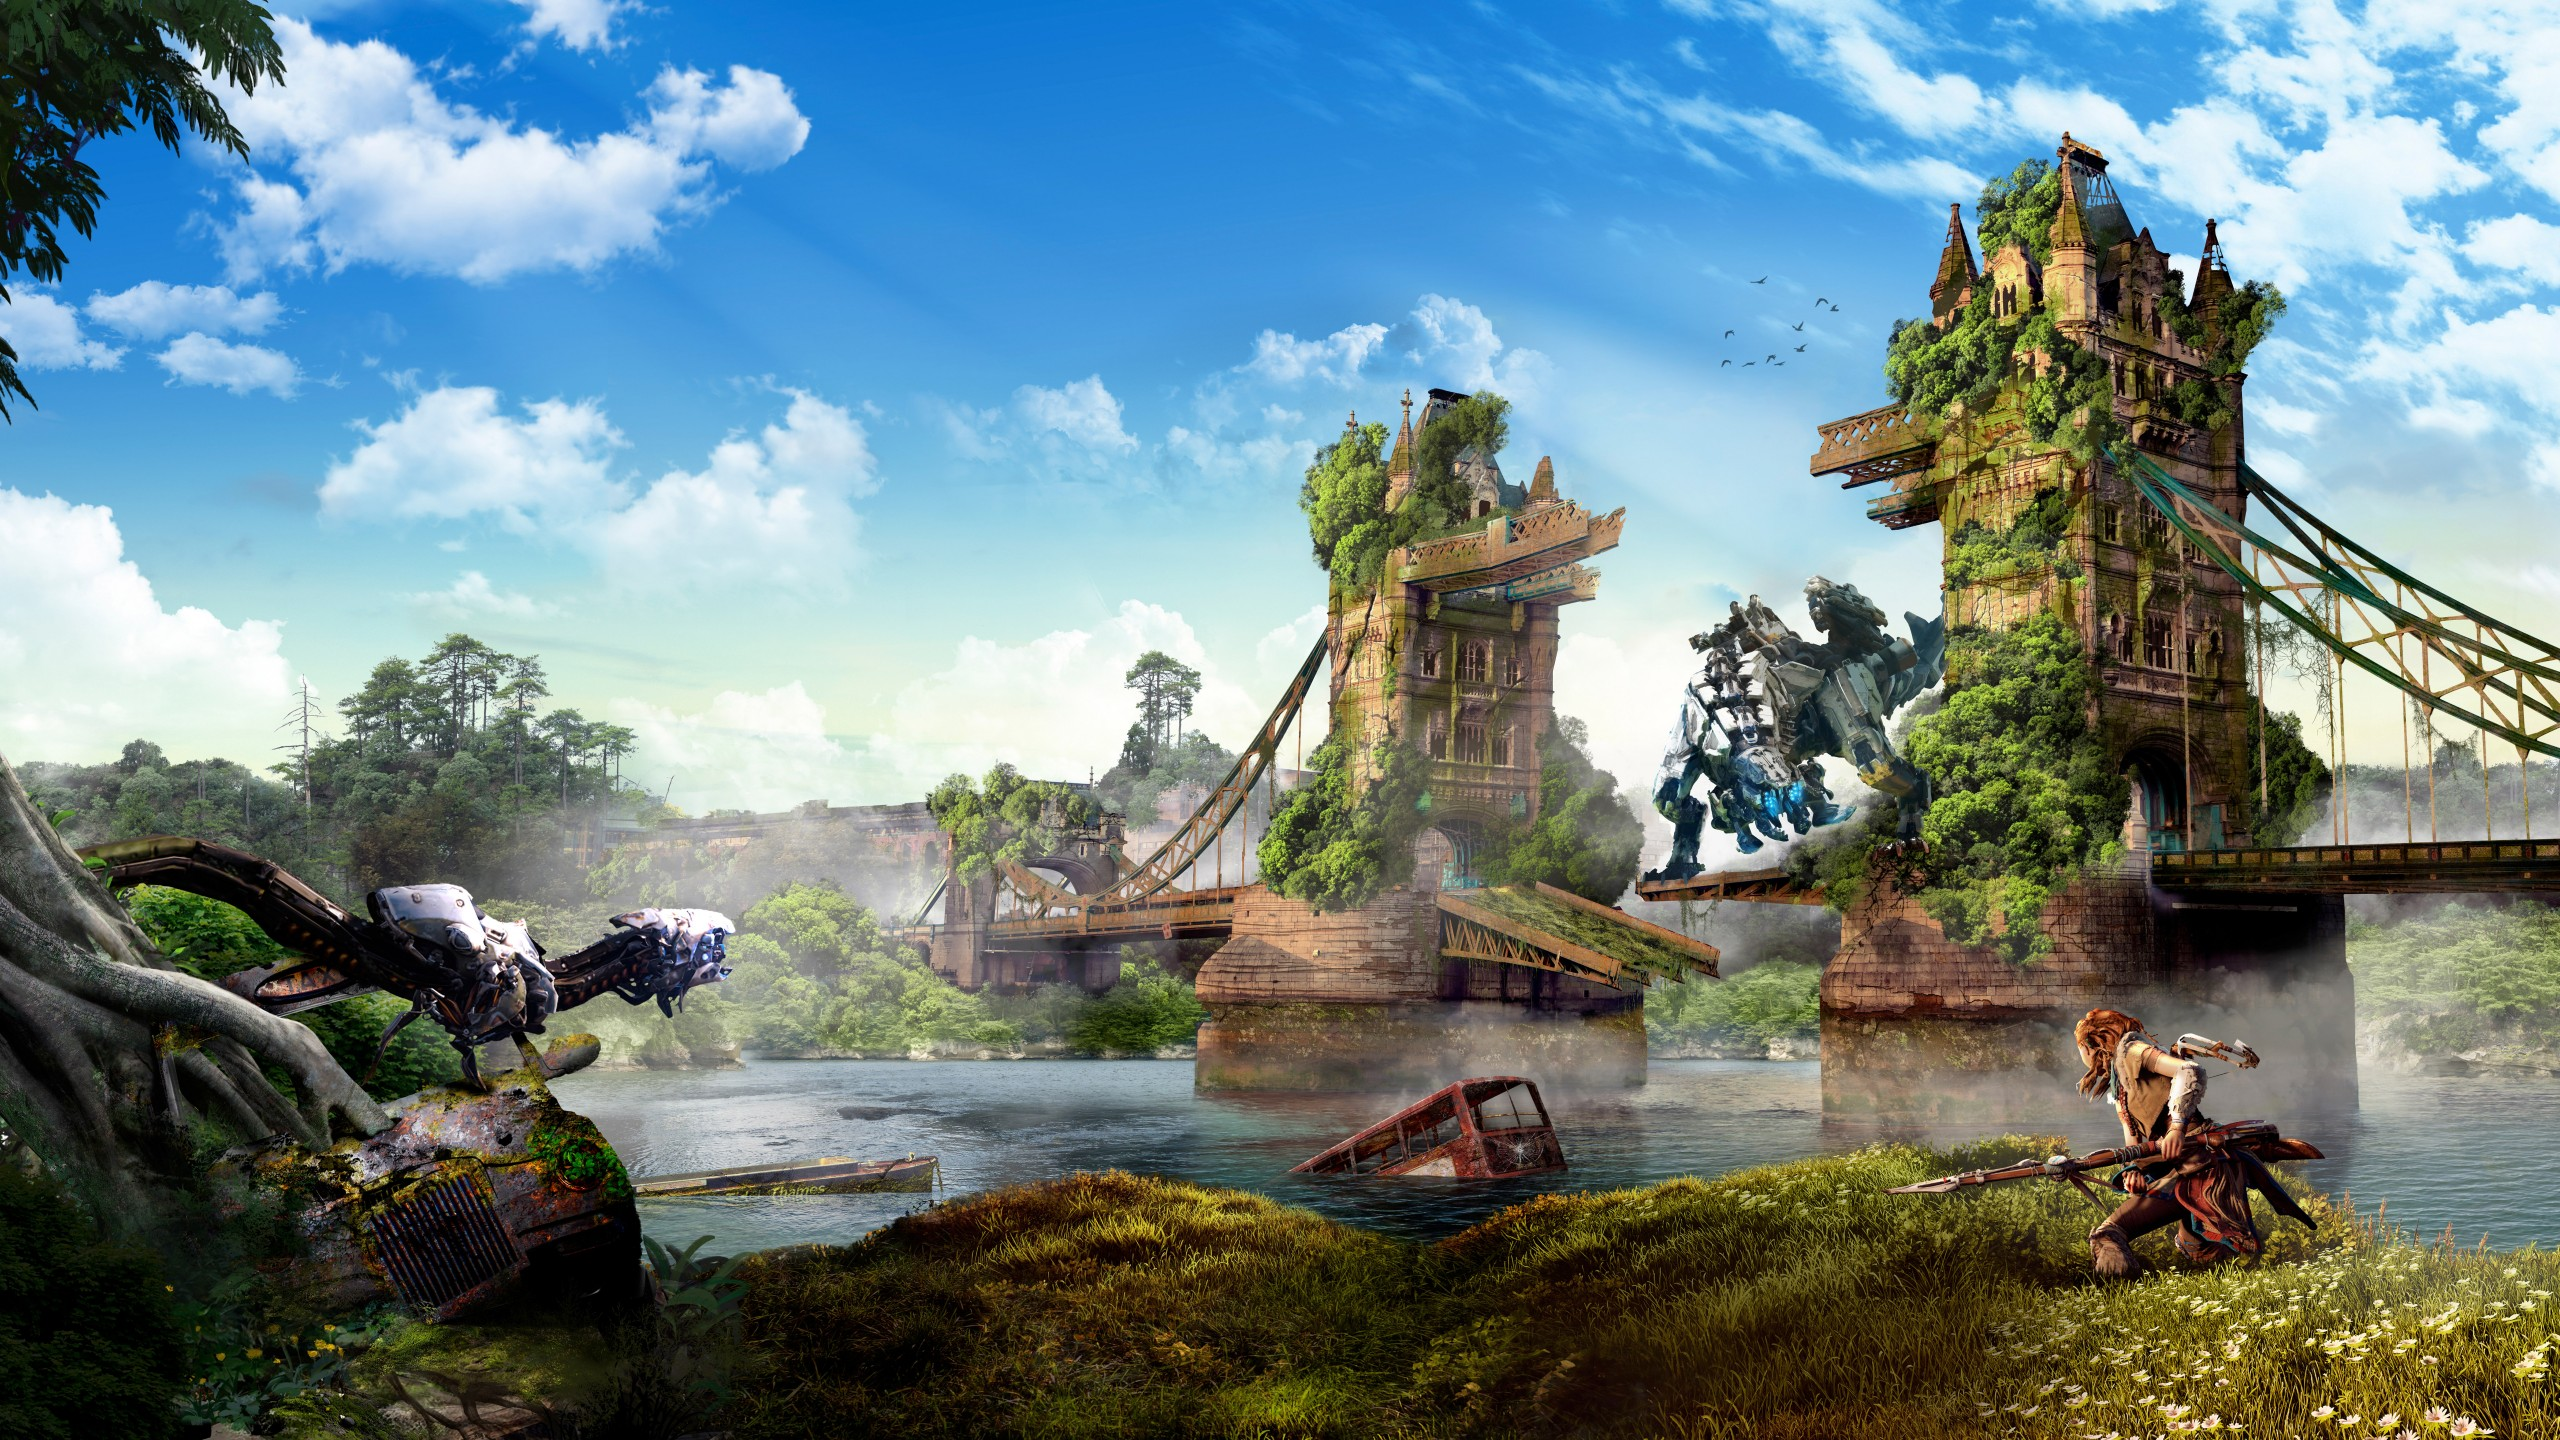 Animated Nature Wallpaper For Windows 7 Horizon Zero Dawn London 4k 8k Wallpapers Hd Wallpapers